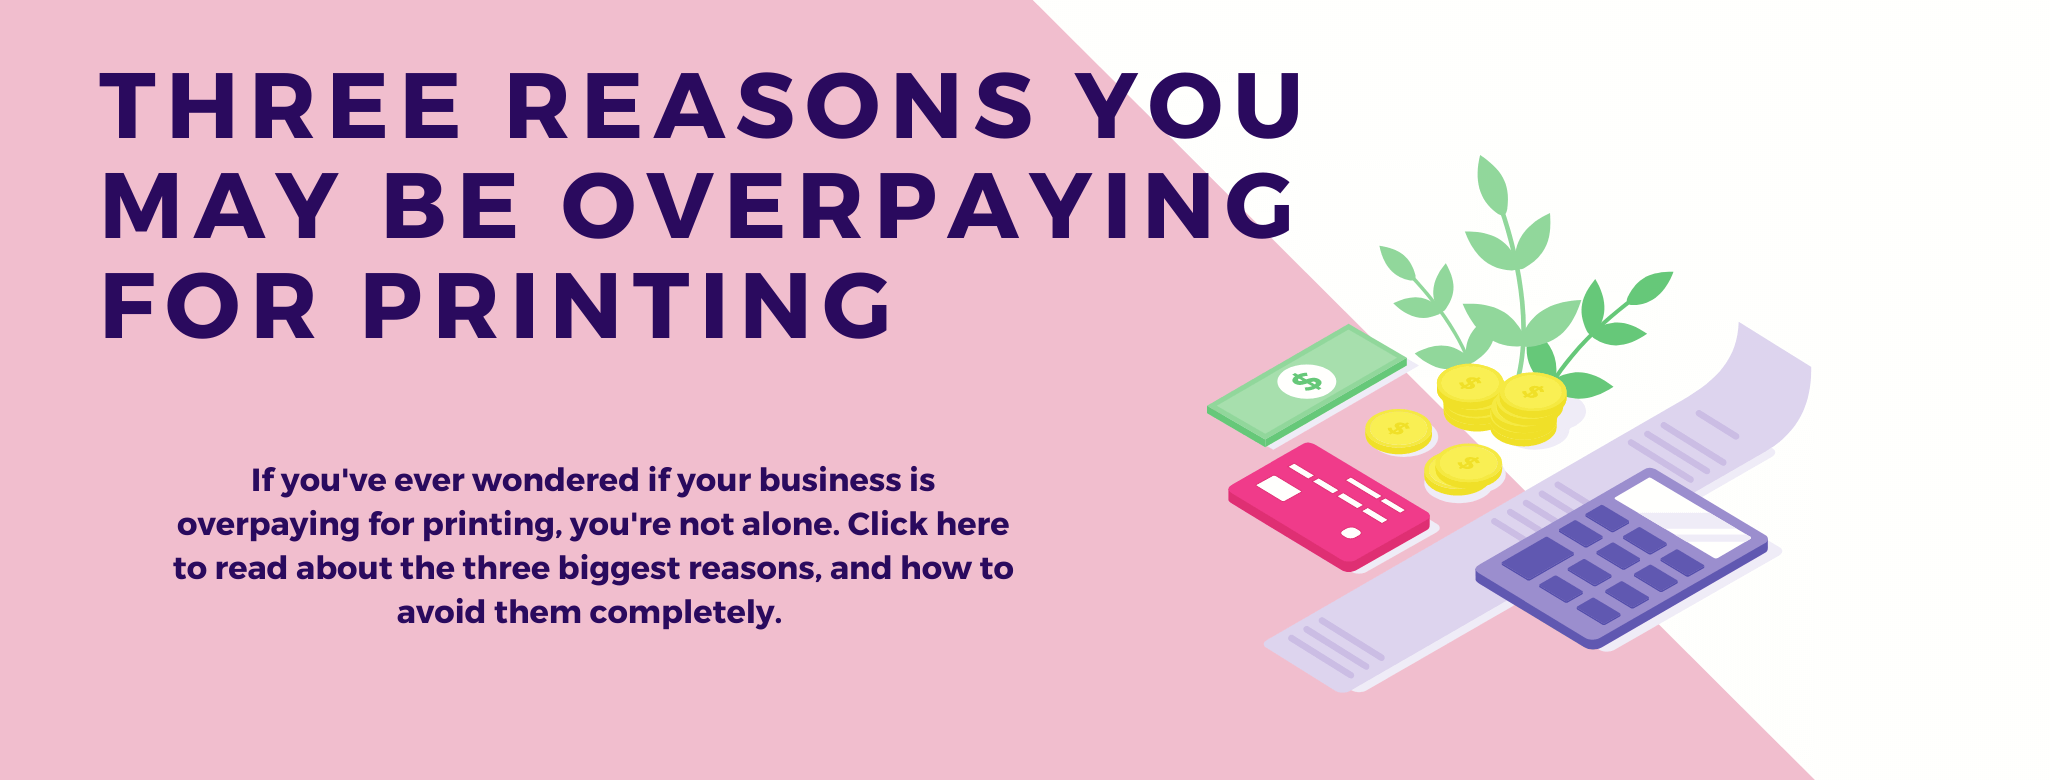 3 reasons you may be overpaying for printing